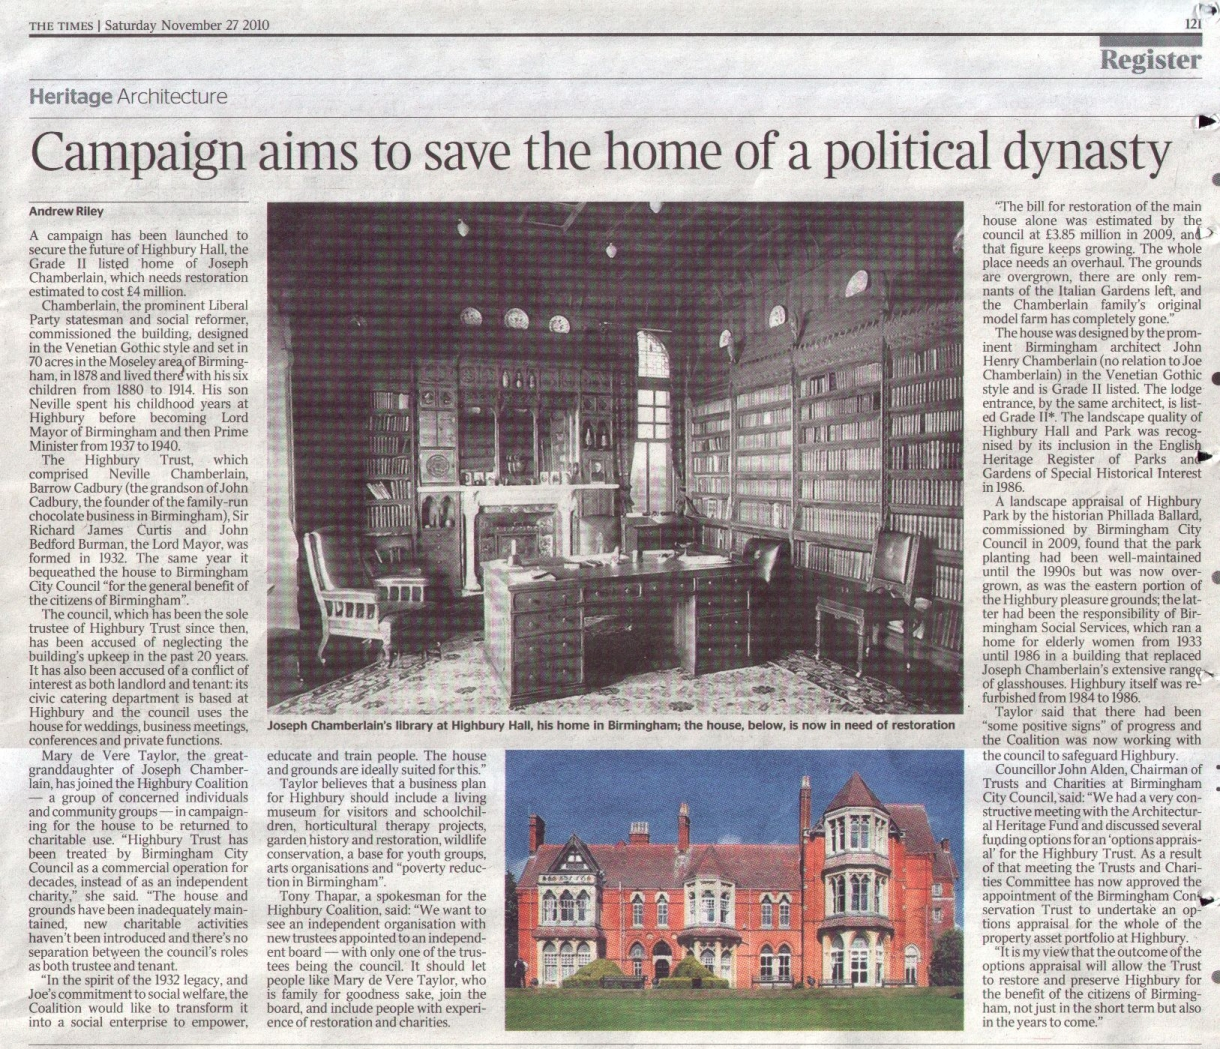 Times article